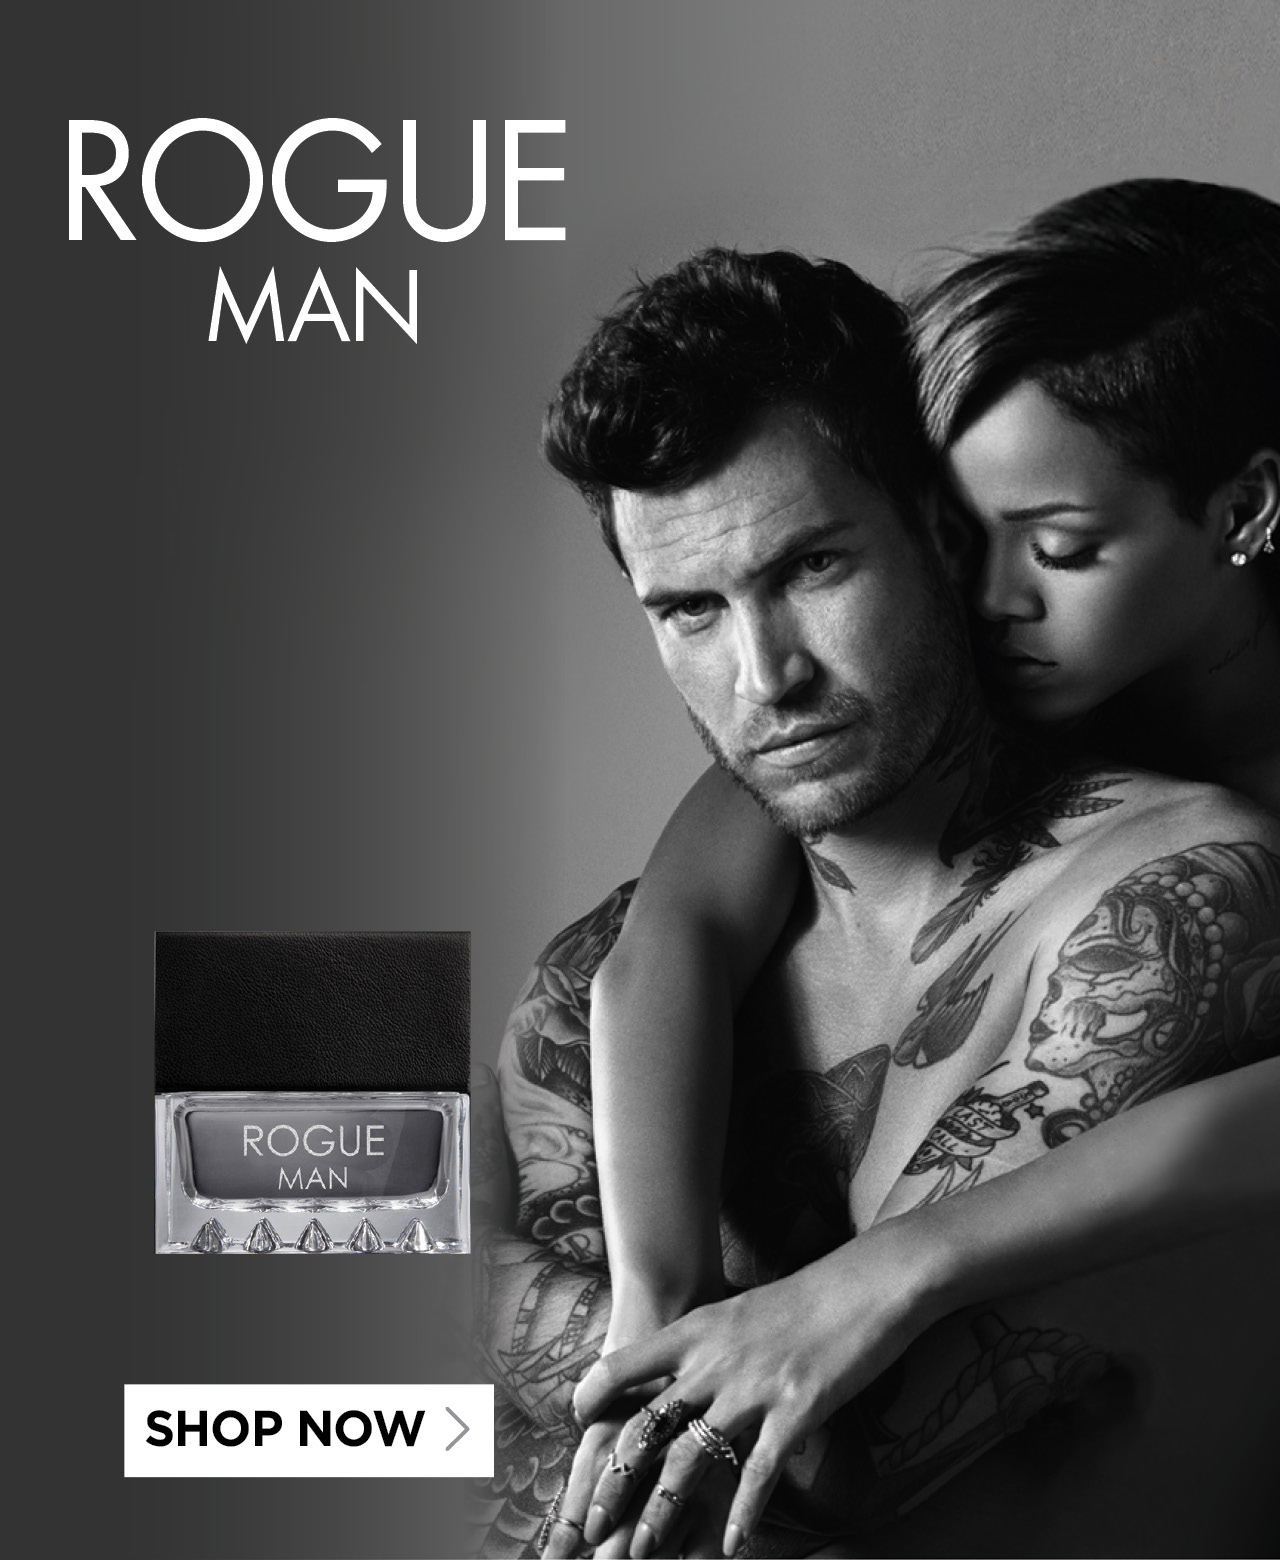 Rogue Man Shop Now